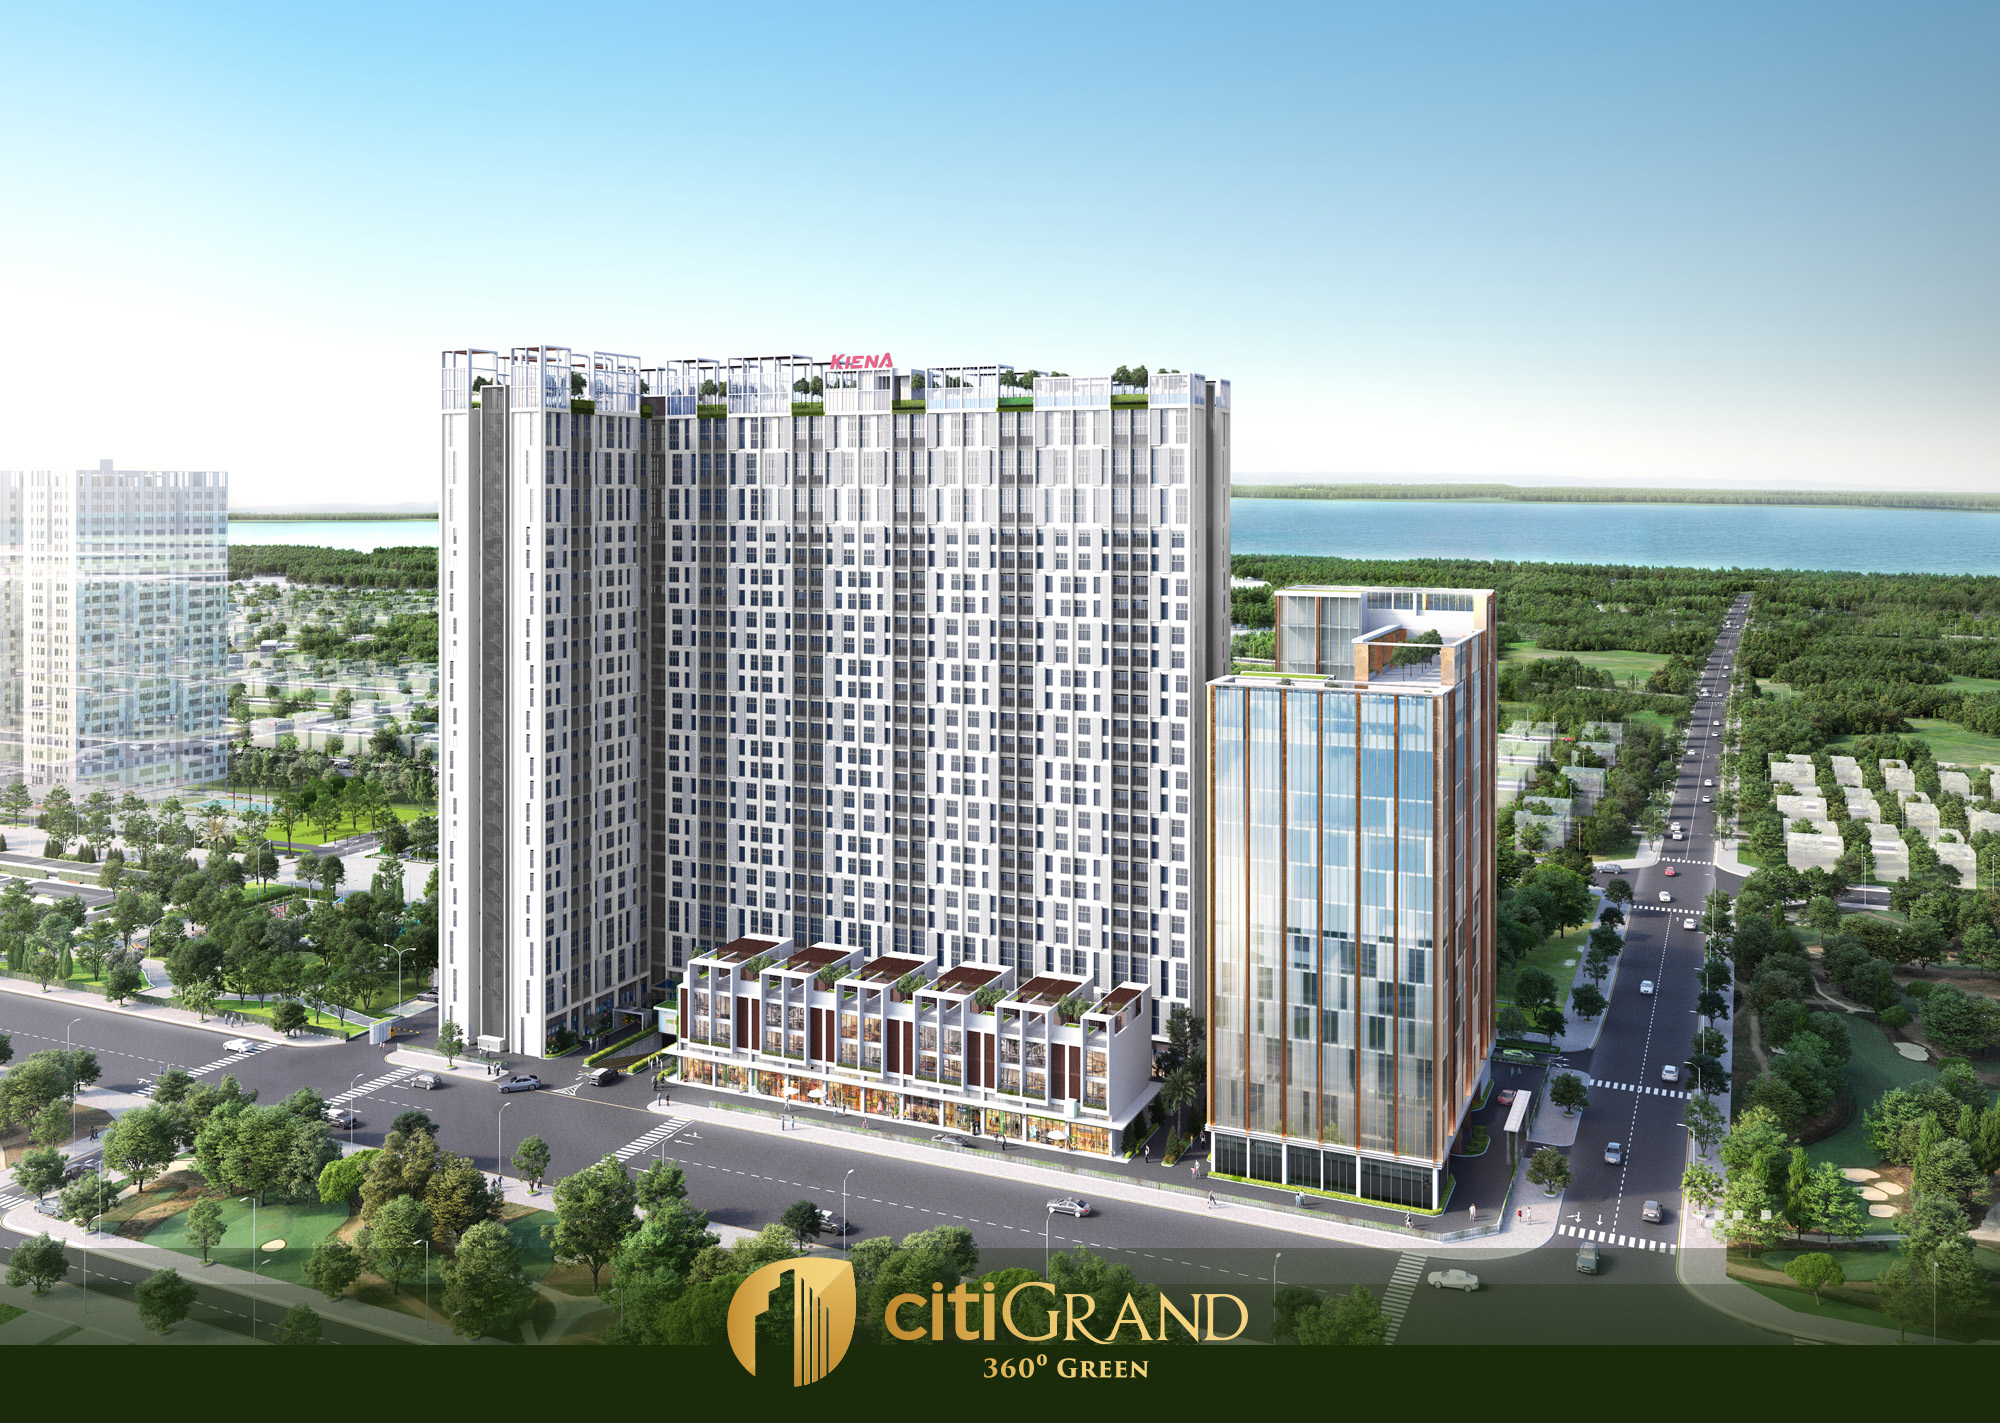 CitiGrand; can ho CitiGrand; du an CitiGrand; Citi Grand; can ho Citi Grang; du an Citi Grand